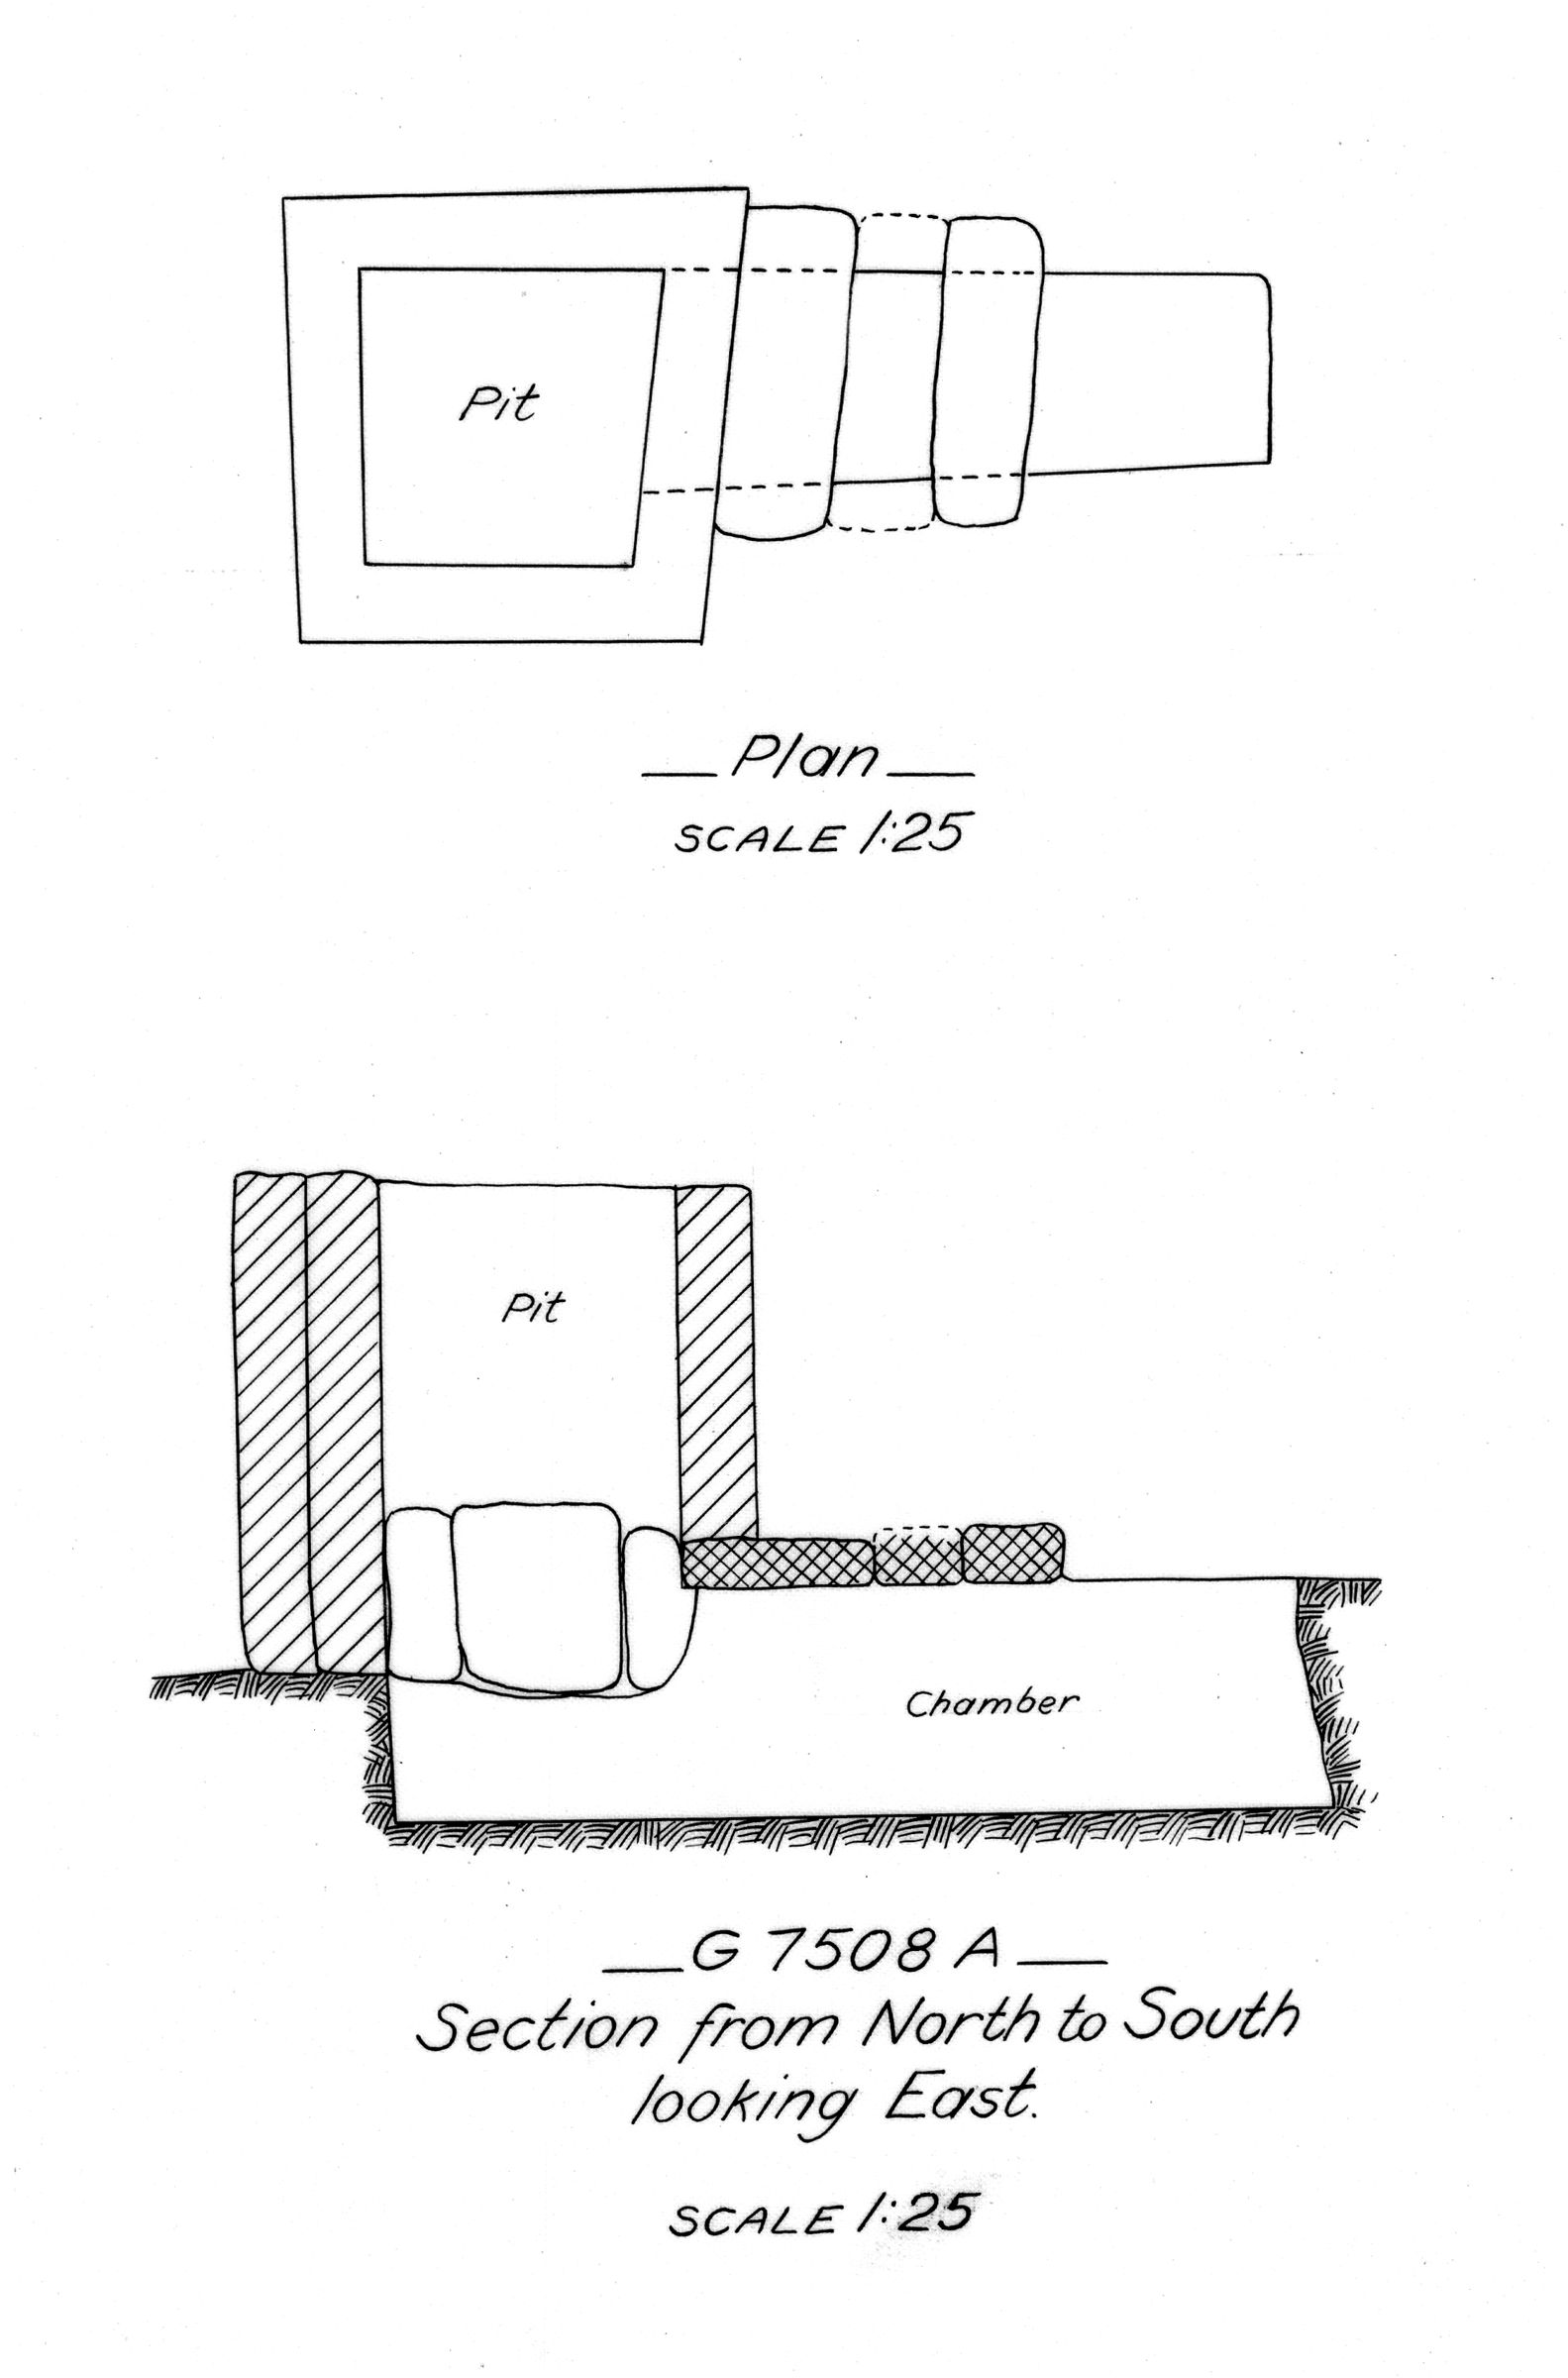 Maps and plans: G 7508, Shaft A